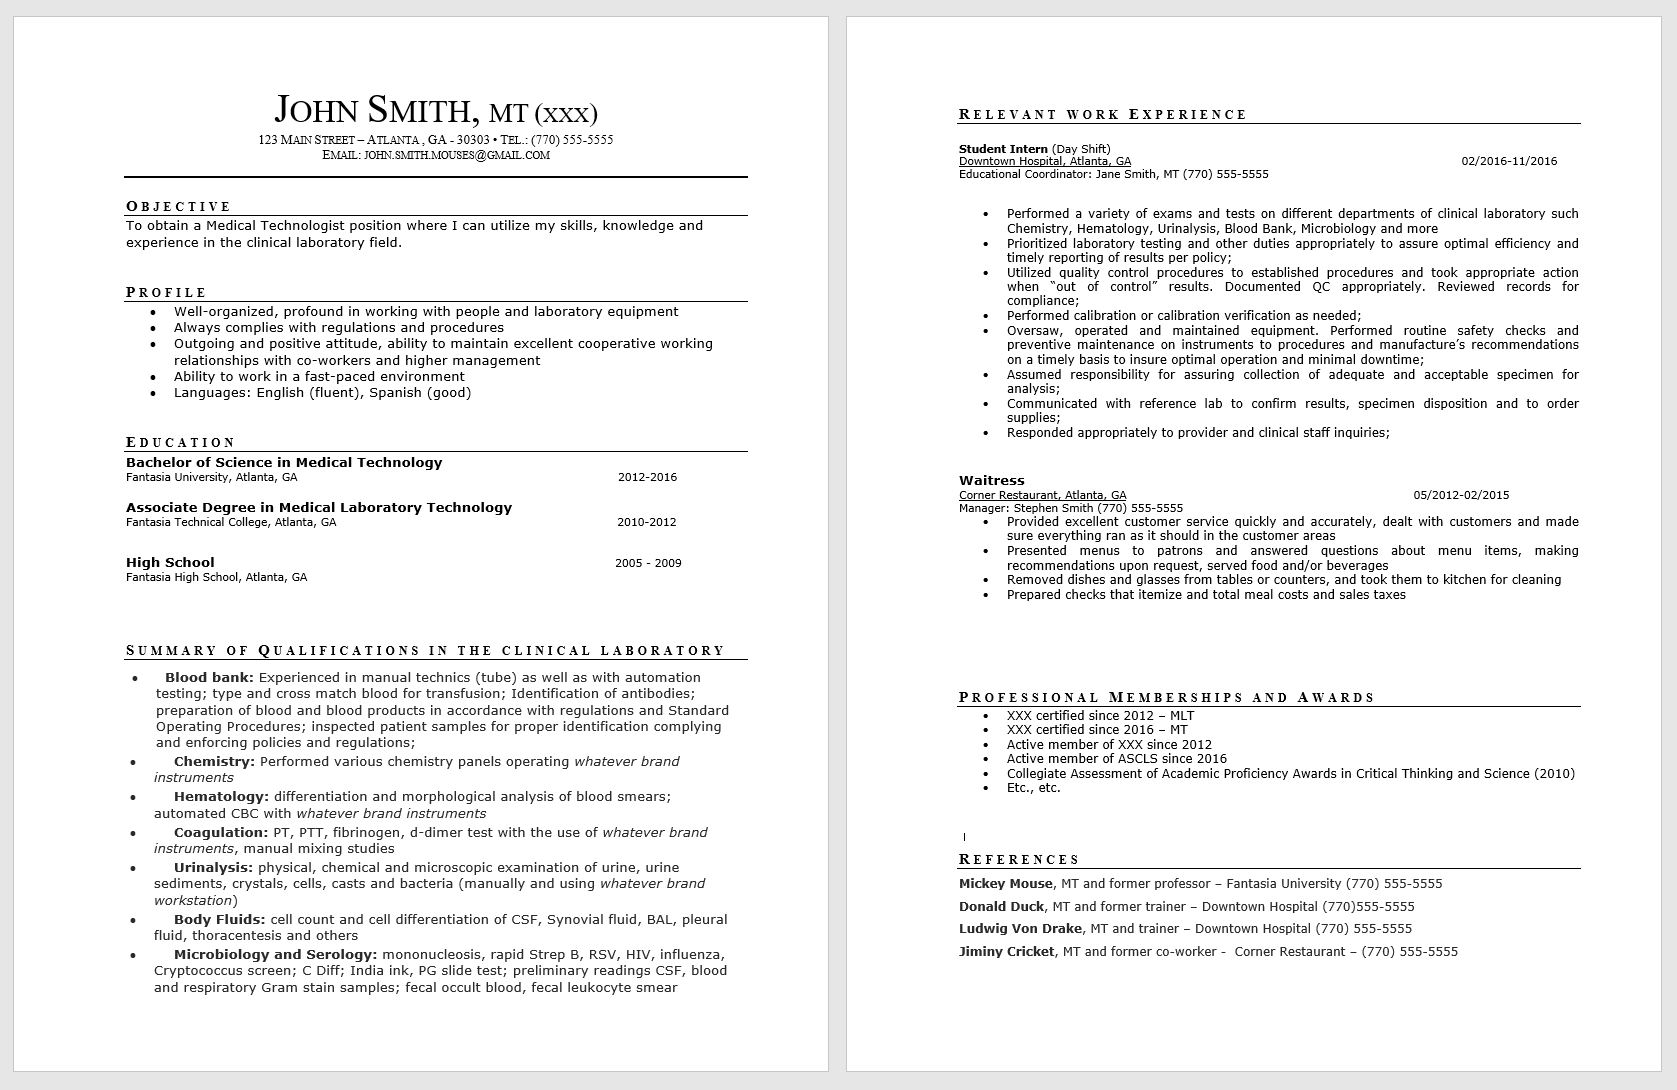 résumé guide society for clinical laboratory science state skills resume johnsmith Resume Laboratory Skills Resume